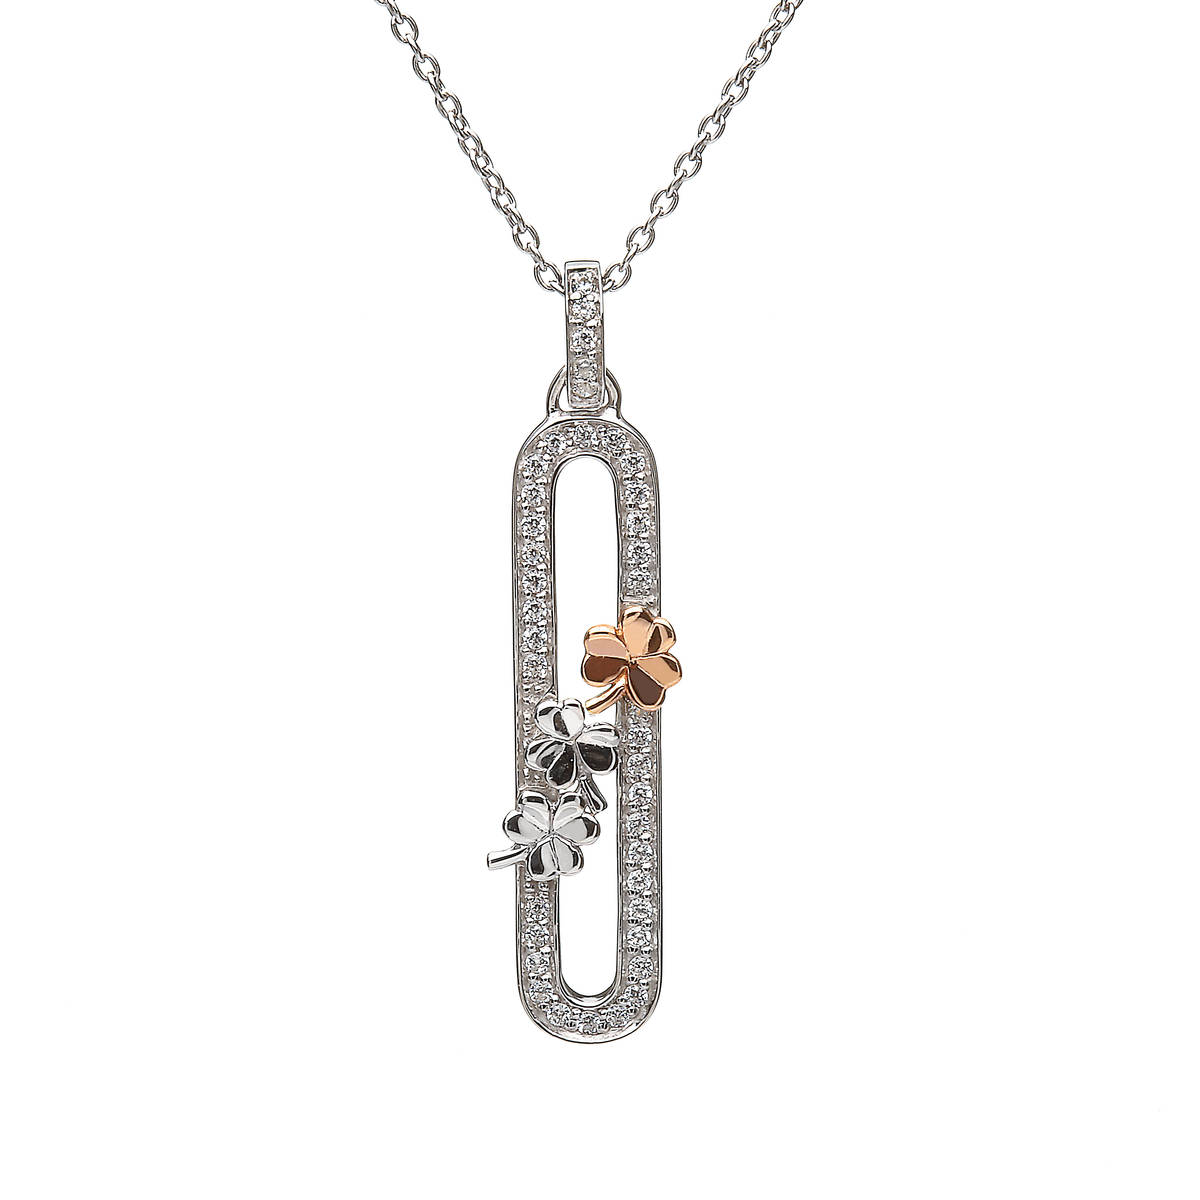 House of Lor silver cz pendant with silver Shamrocks 1 rose gold Shamrock made from rare Irish gold